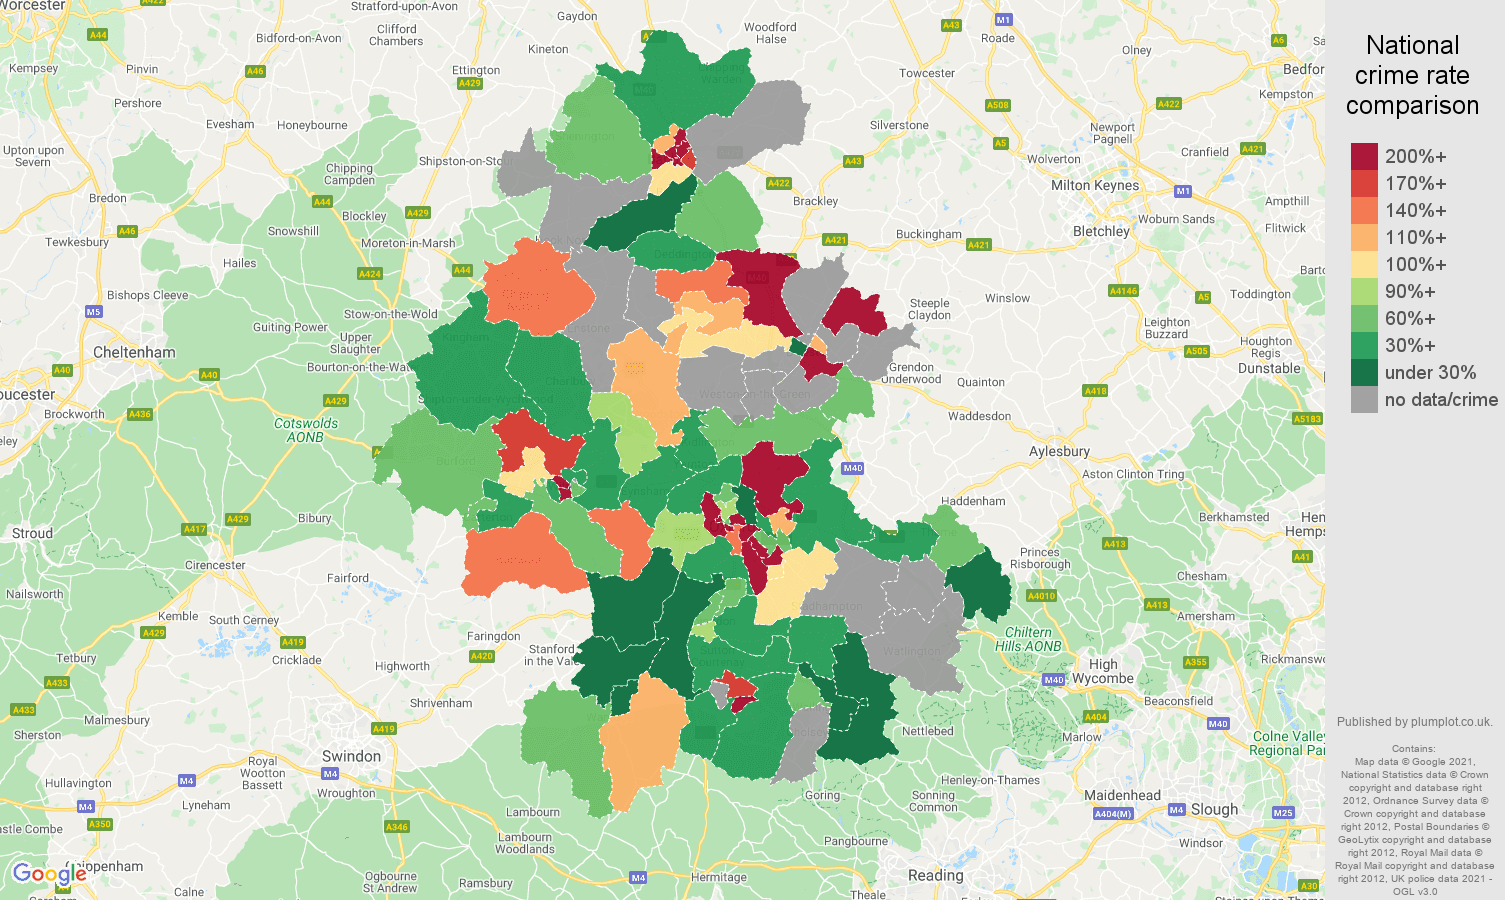 Oxford theft from the person crime rate comparison map